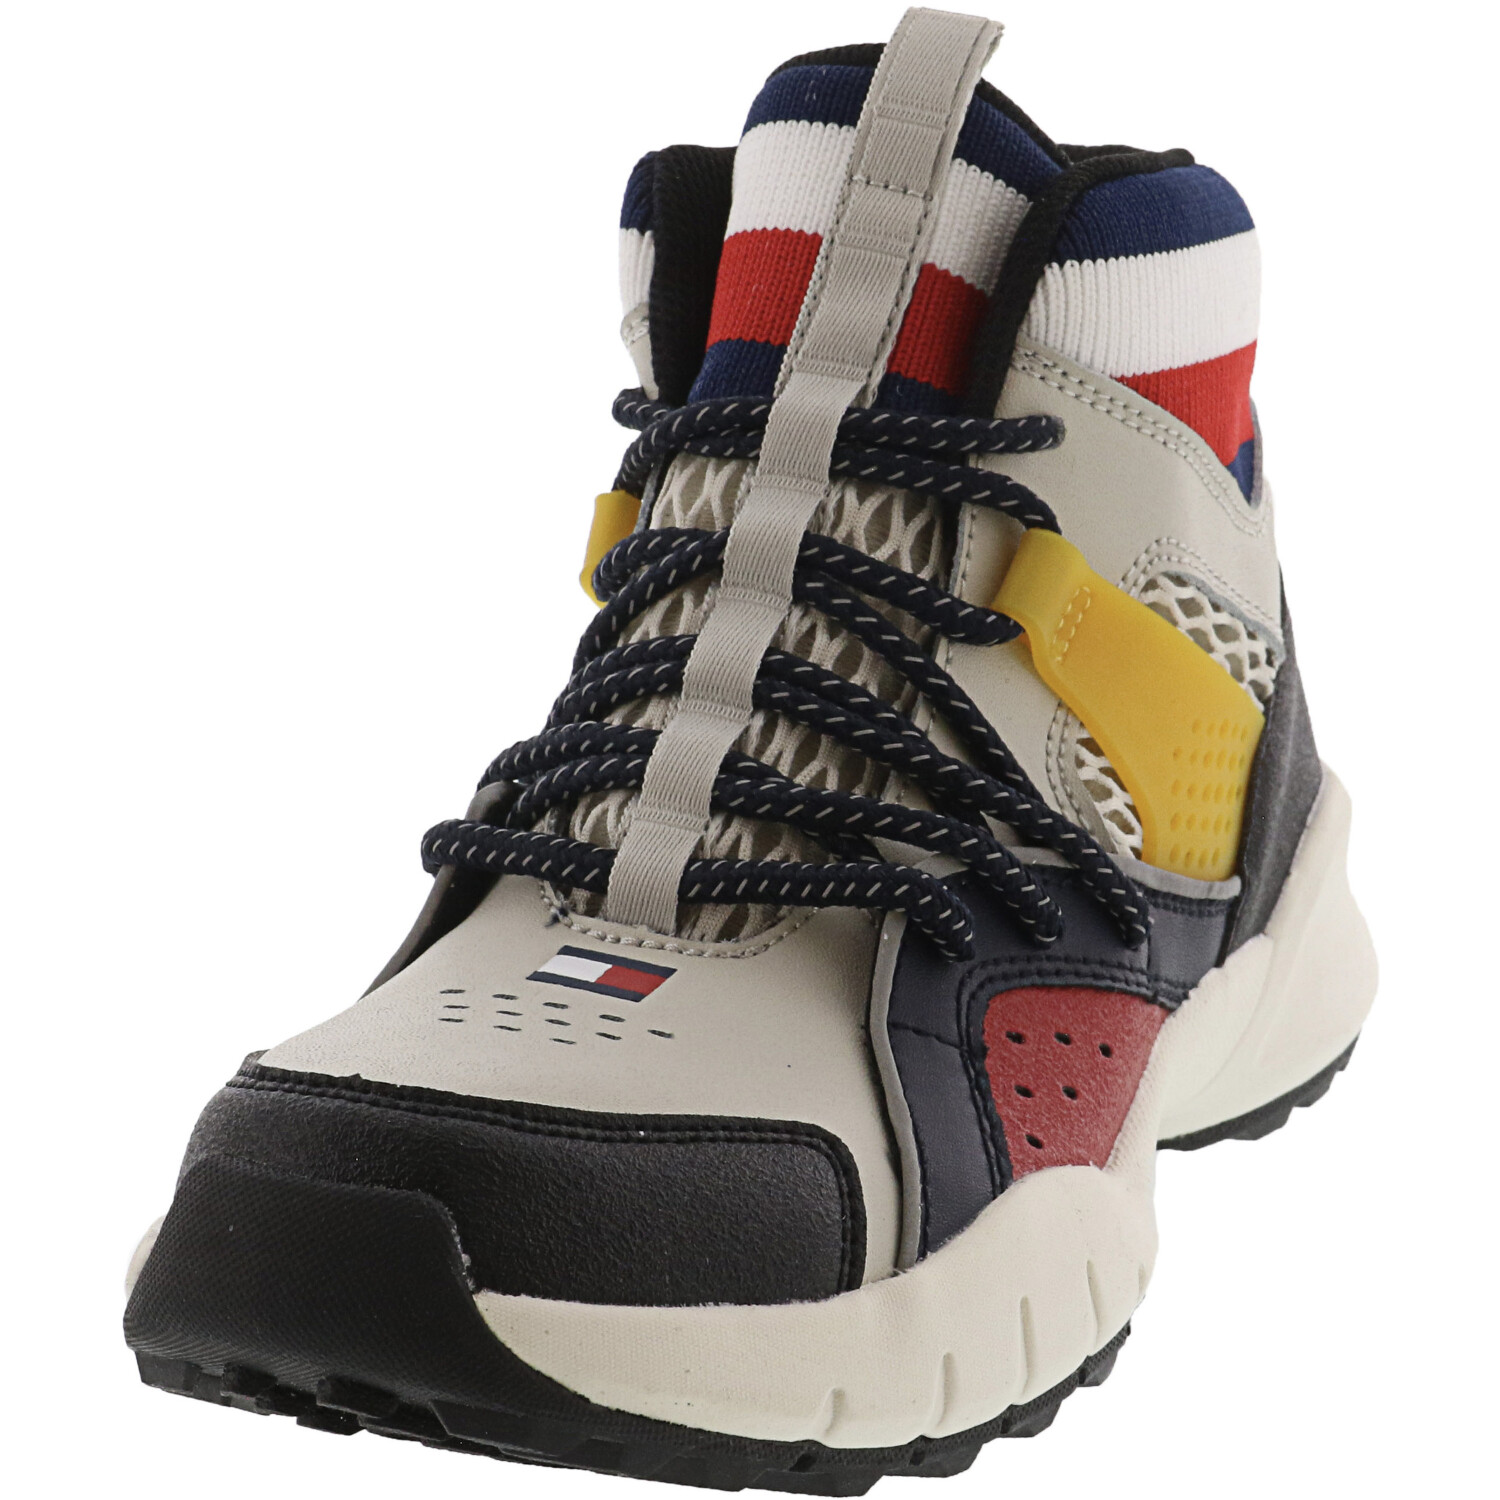 Tommy Hilfiger Trail Mid Light Taupe / Navy Red Ankle-High Leather Hiking Shoe - 5M